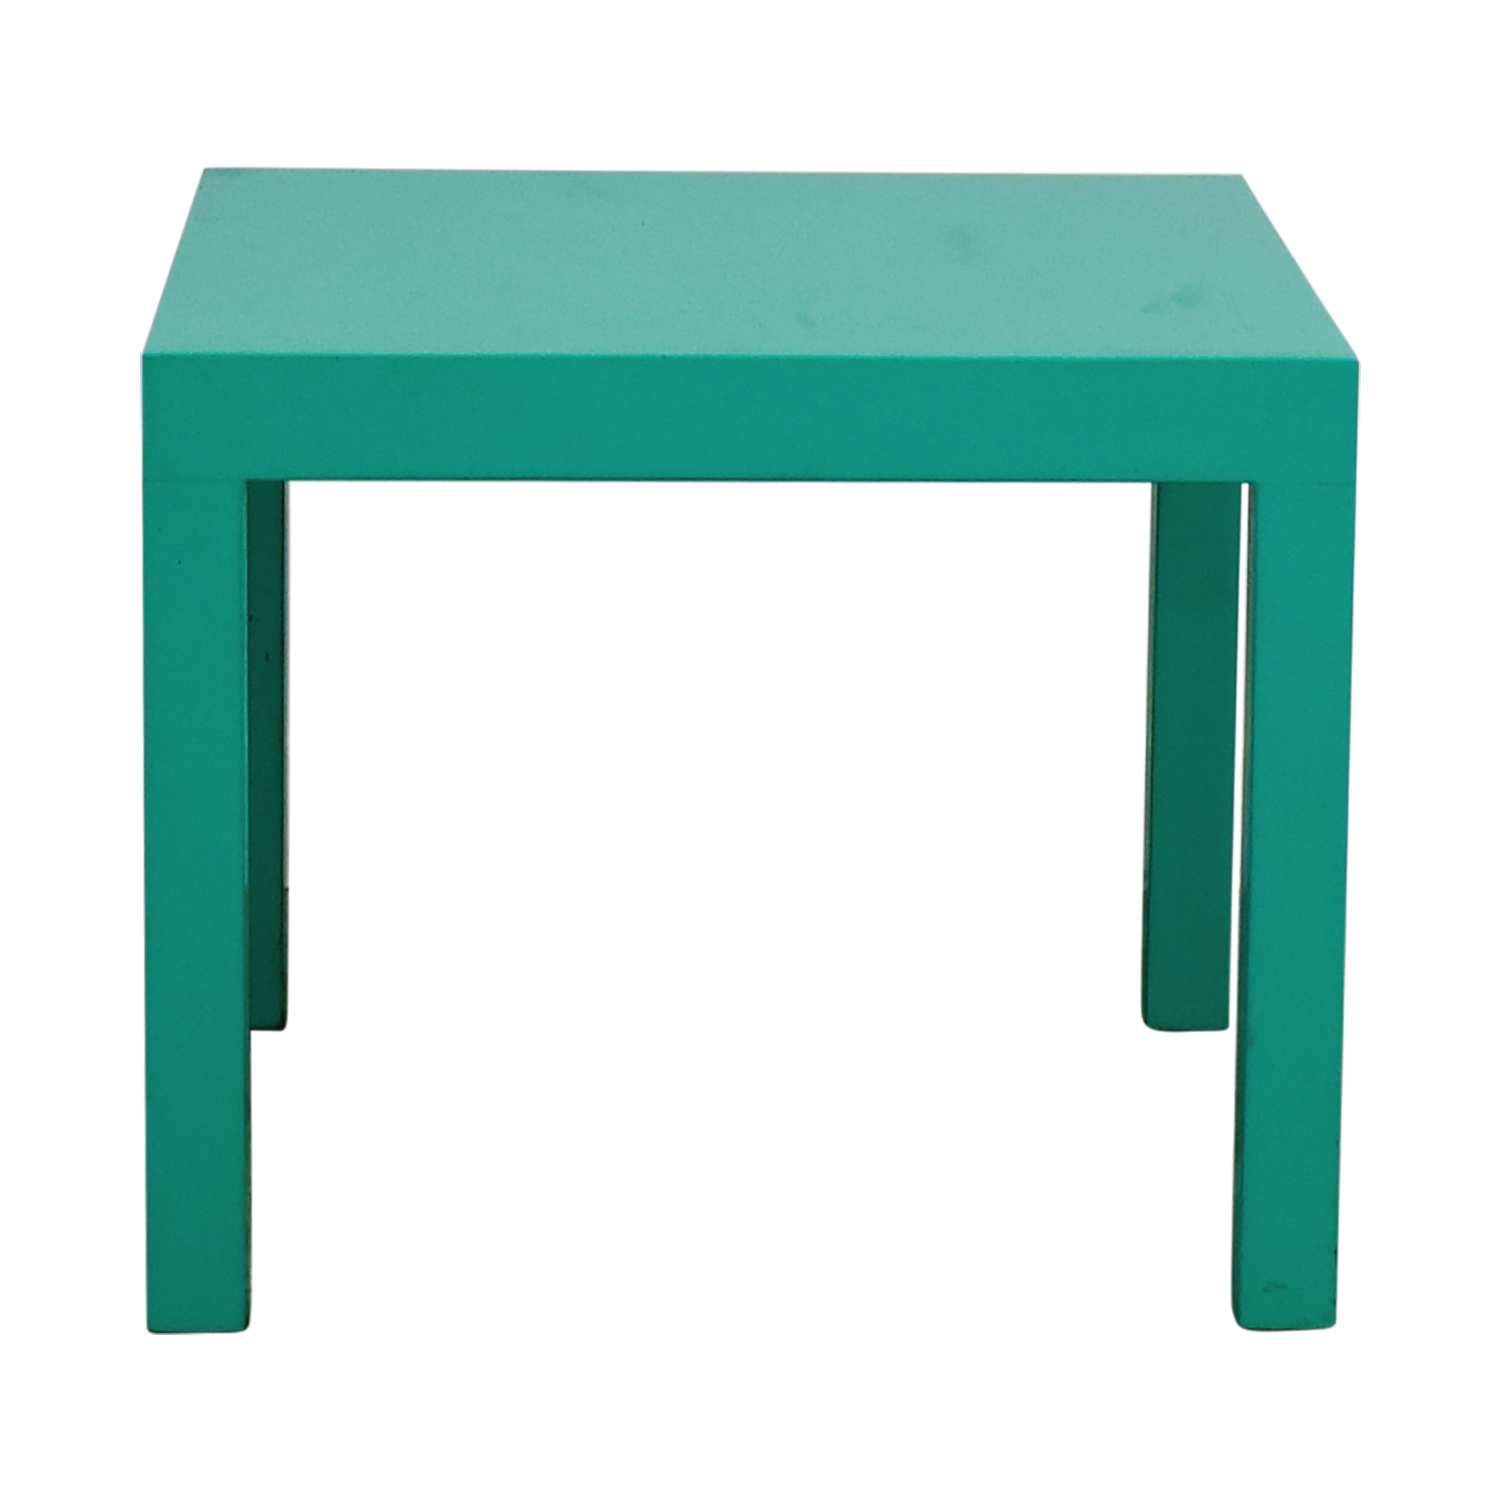 Mikes Furniture Mikes Furniture Turquoise Side Table